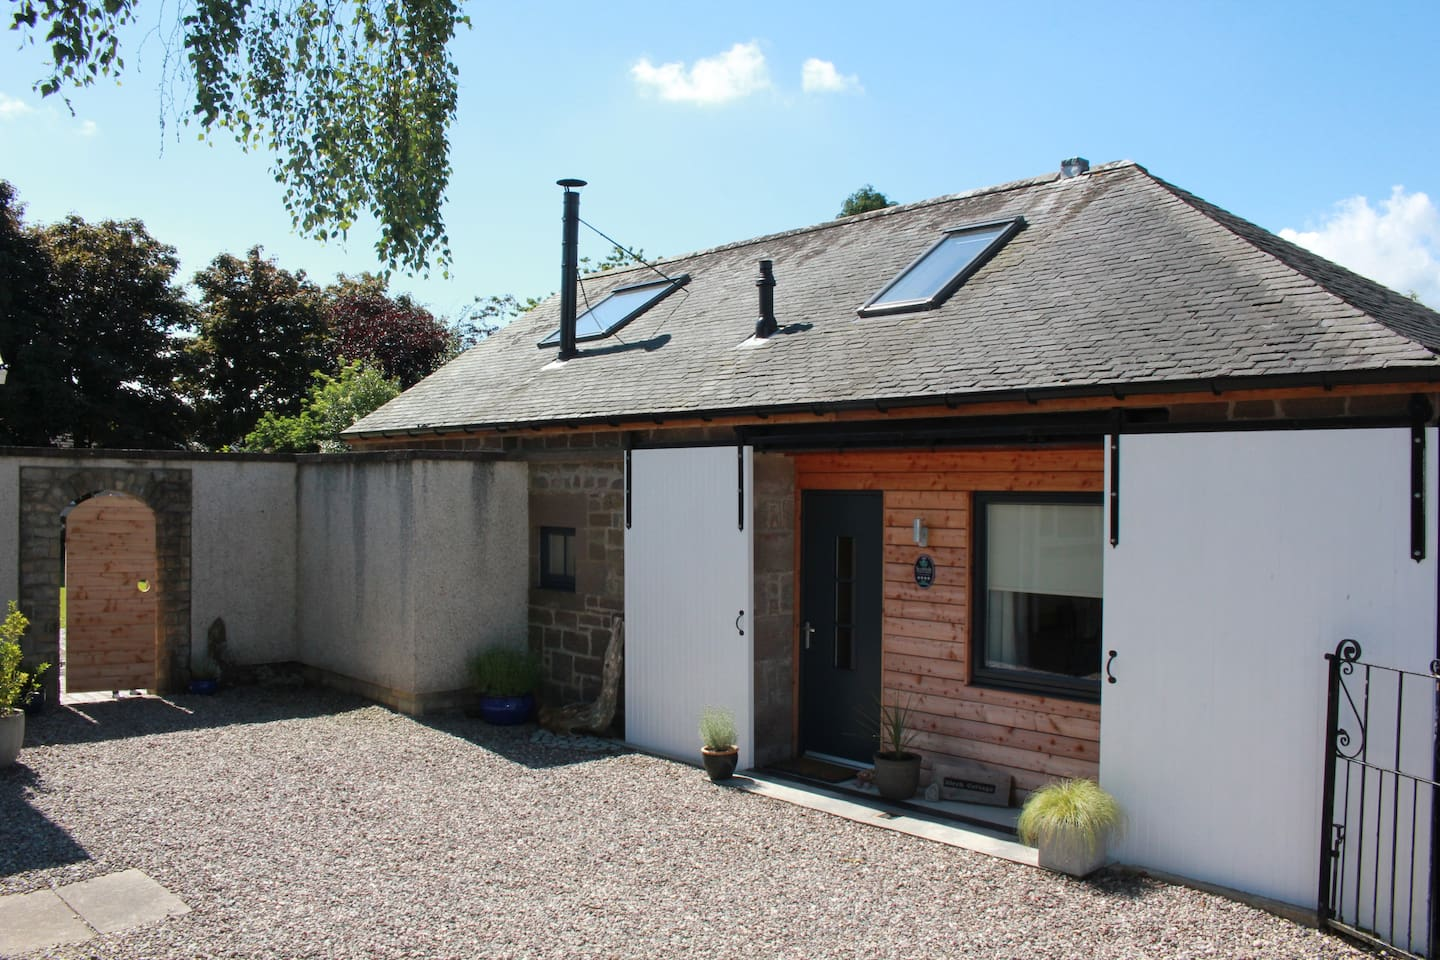 Birch Cottage - a beautiful retreat in the heart of Edzell